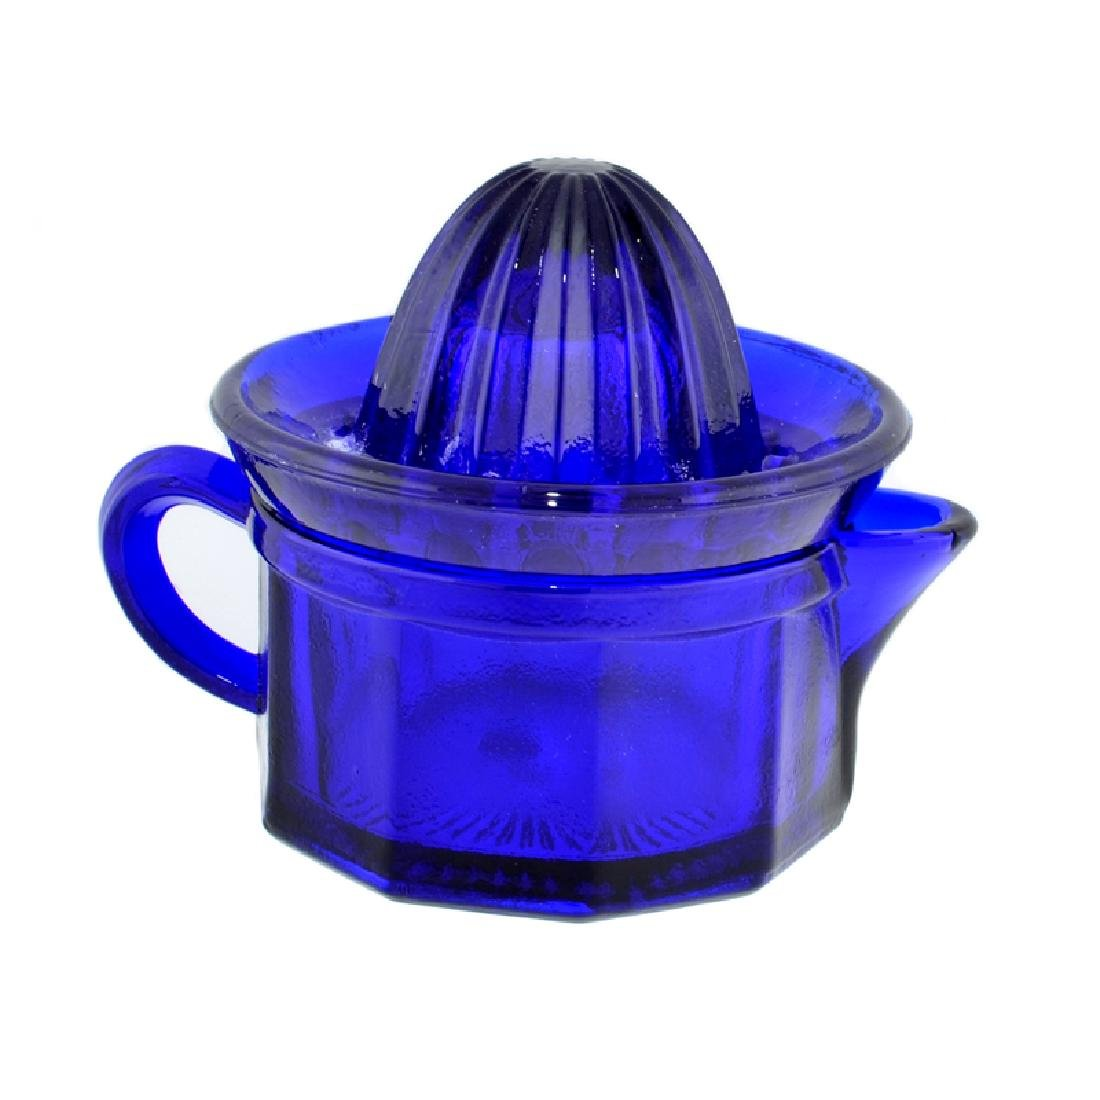 Small Blue Juicer